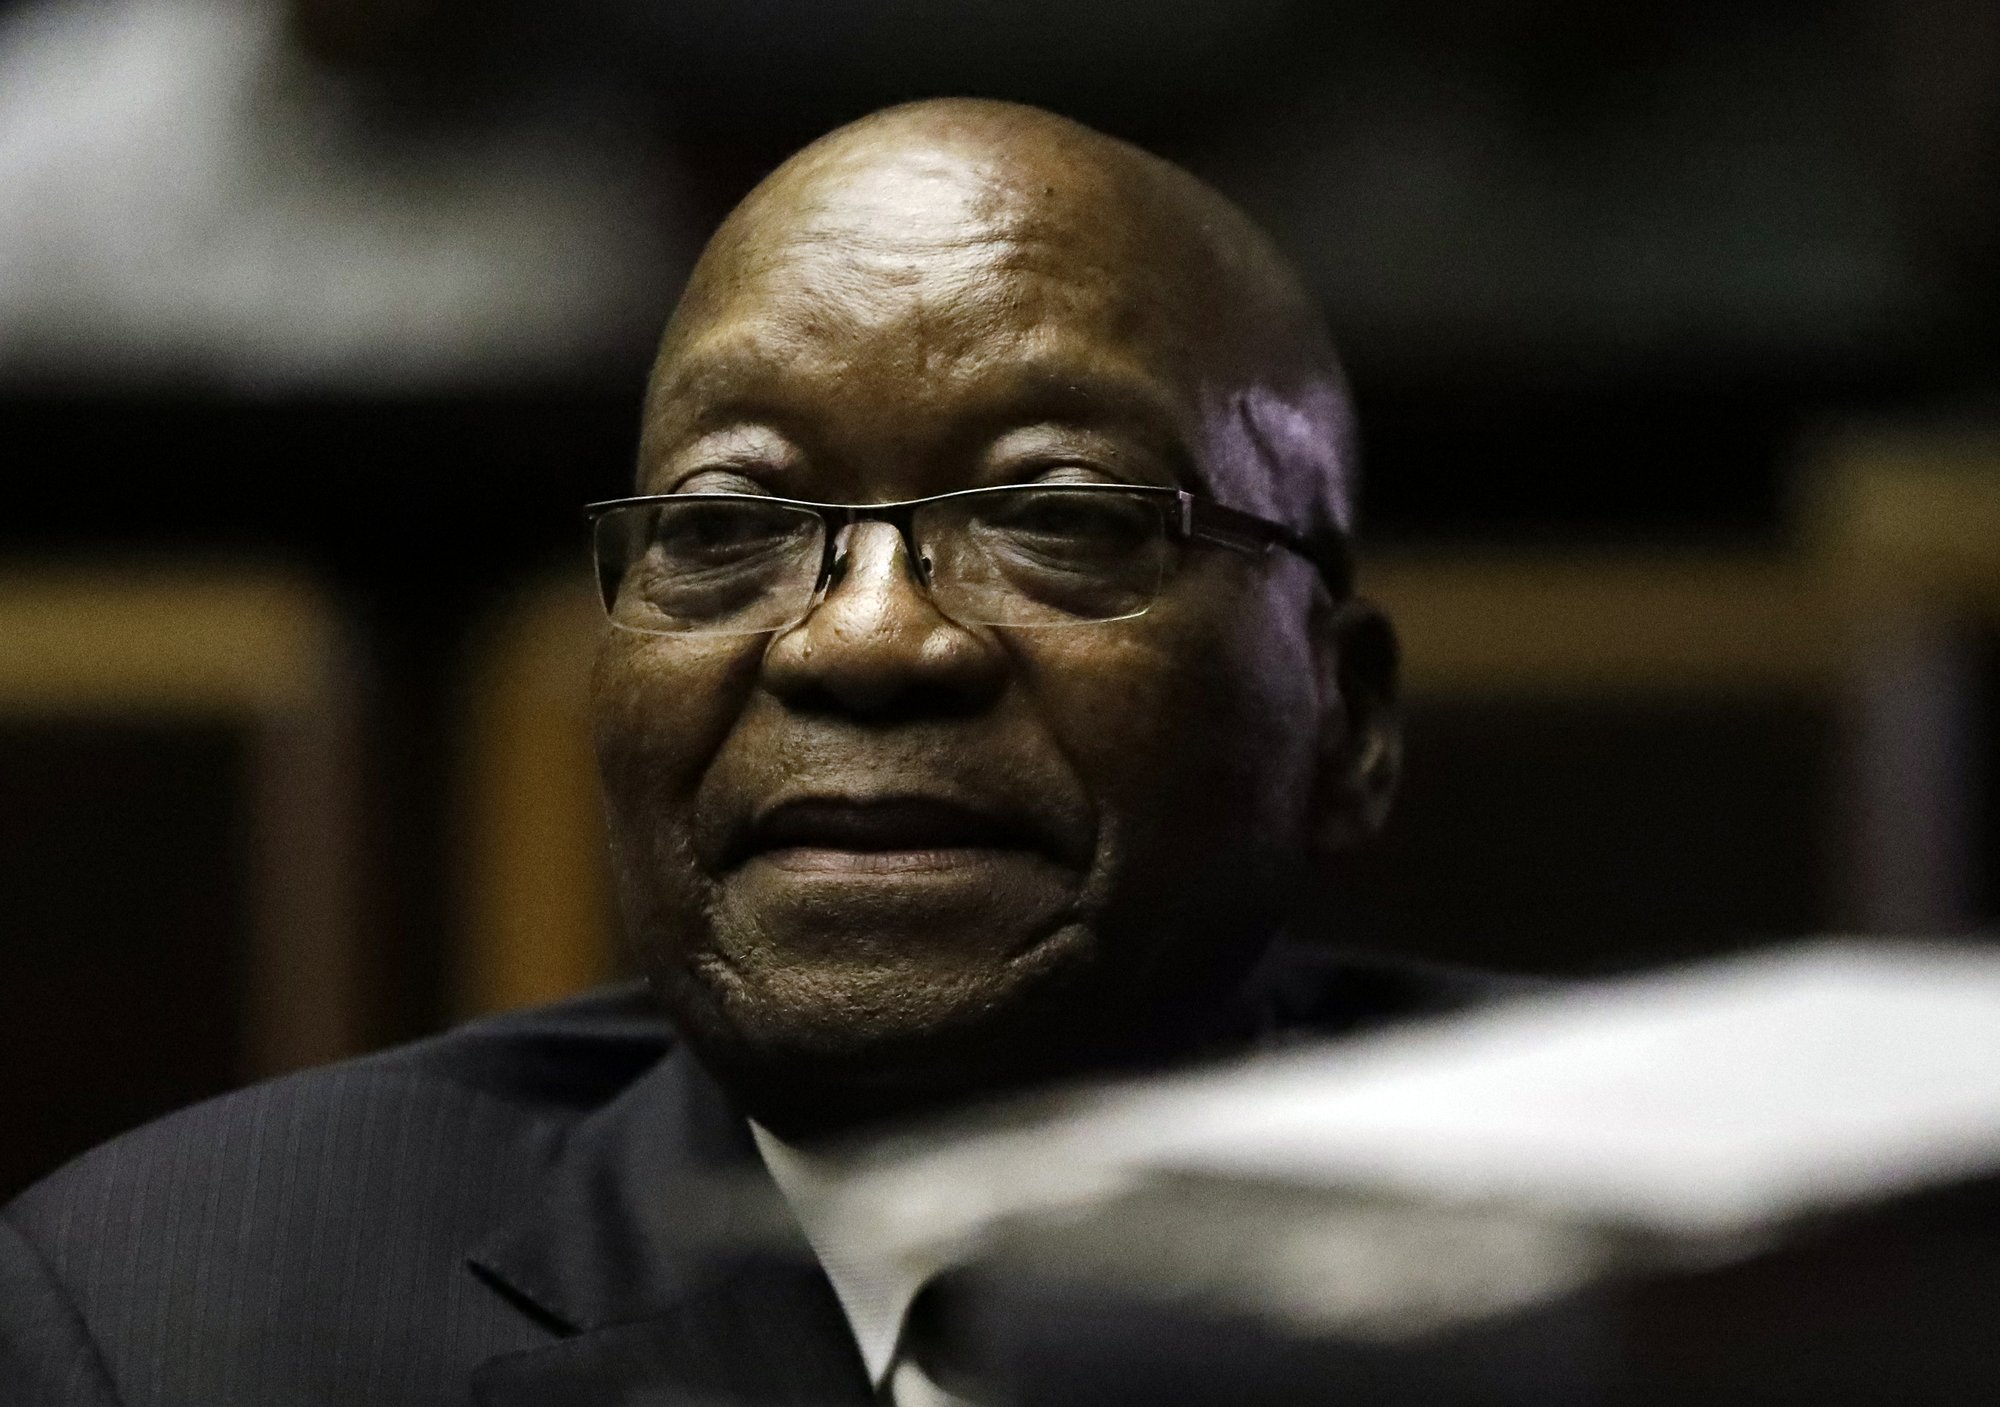 South Africa's Zuma must wait 3 months for court decision